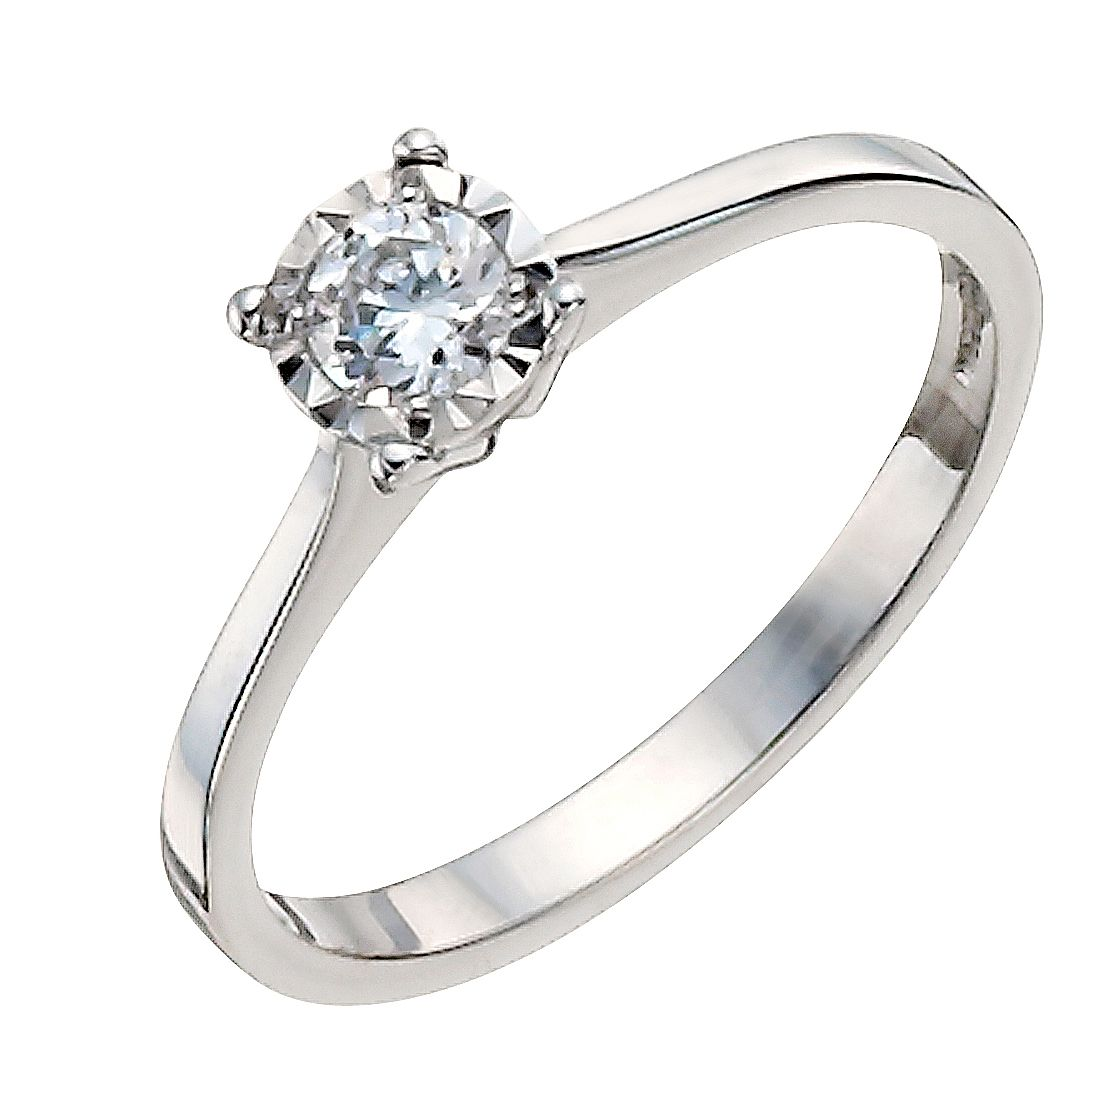 rings a cut streamlined combining clean contemporary co classic eshop solitaire shape banners wedding engagement princess appearance appealingly with setting diamonds our an offer stone gabriel